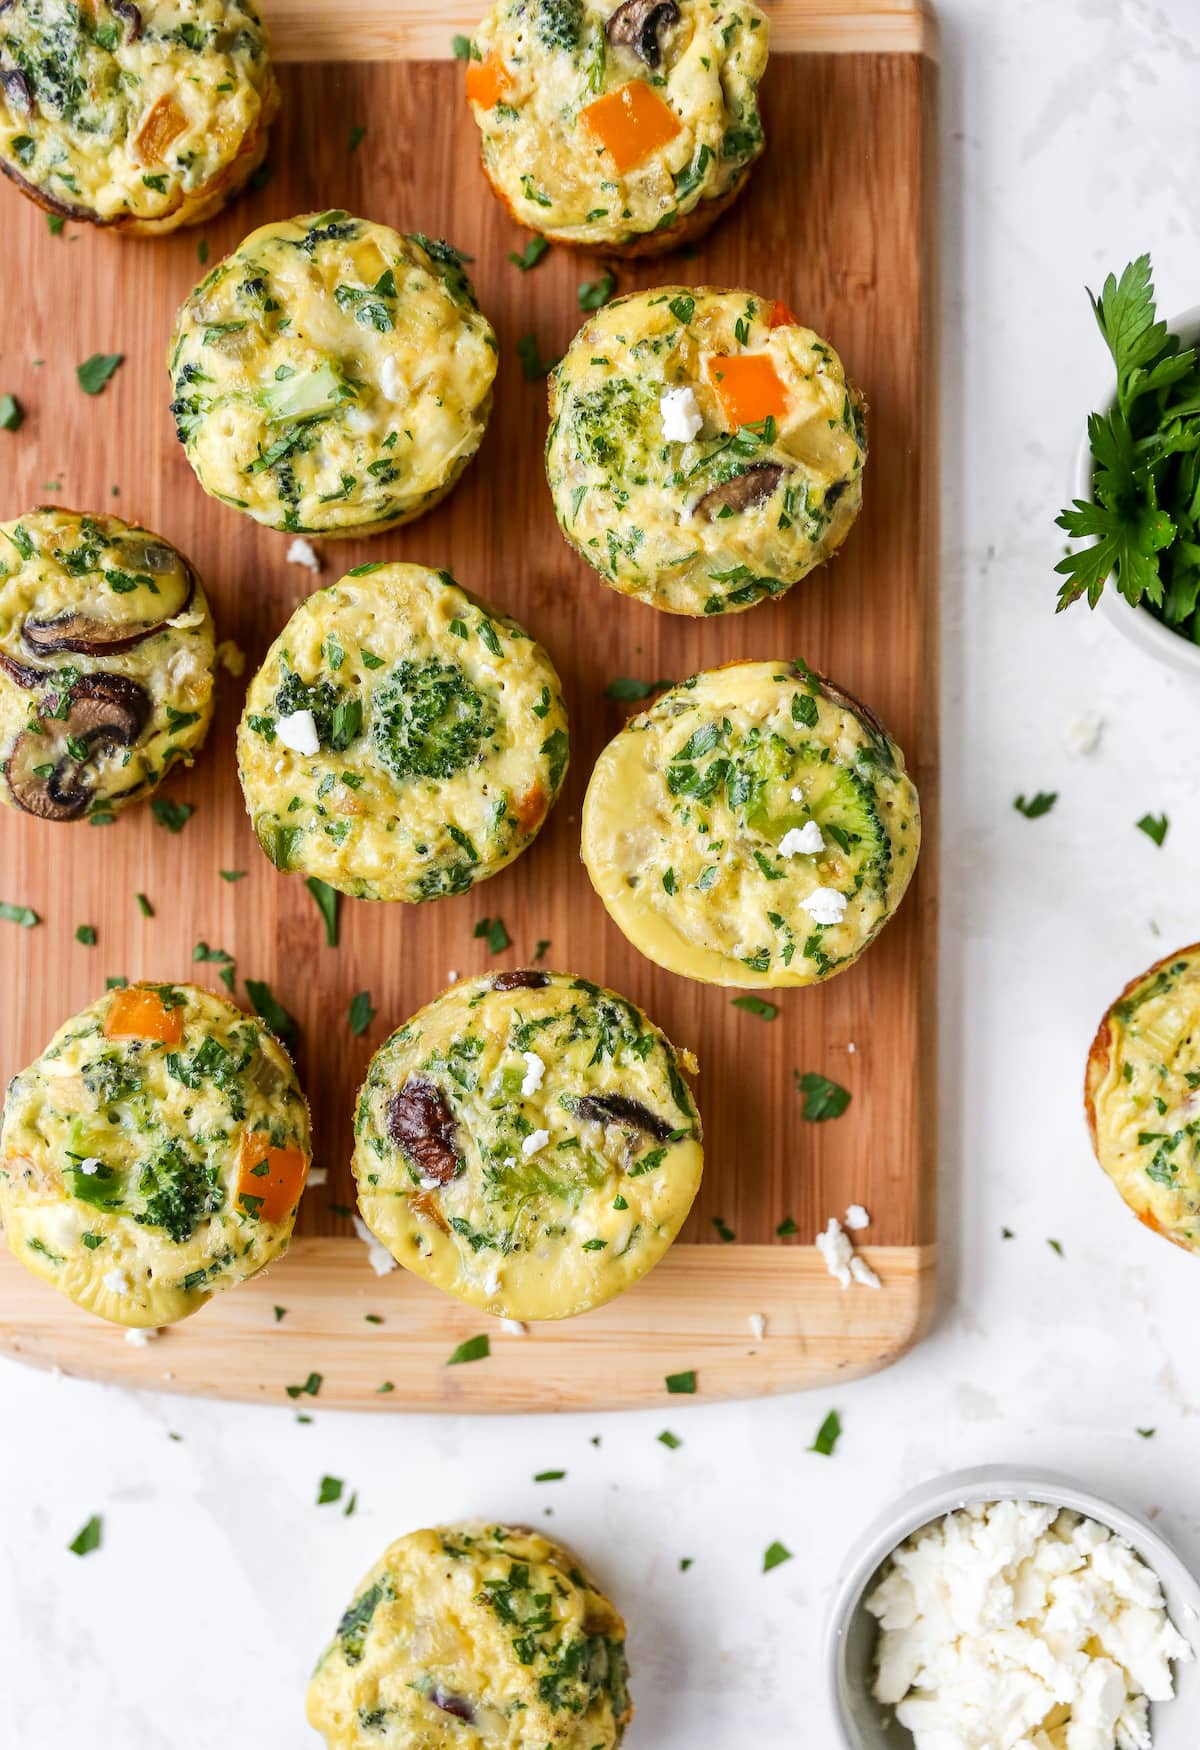 Baked egg and veggie cups on a wood cutting board.